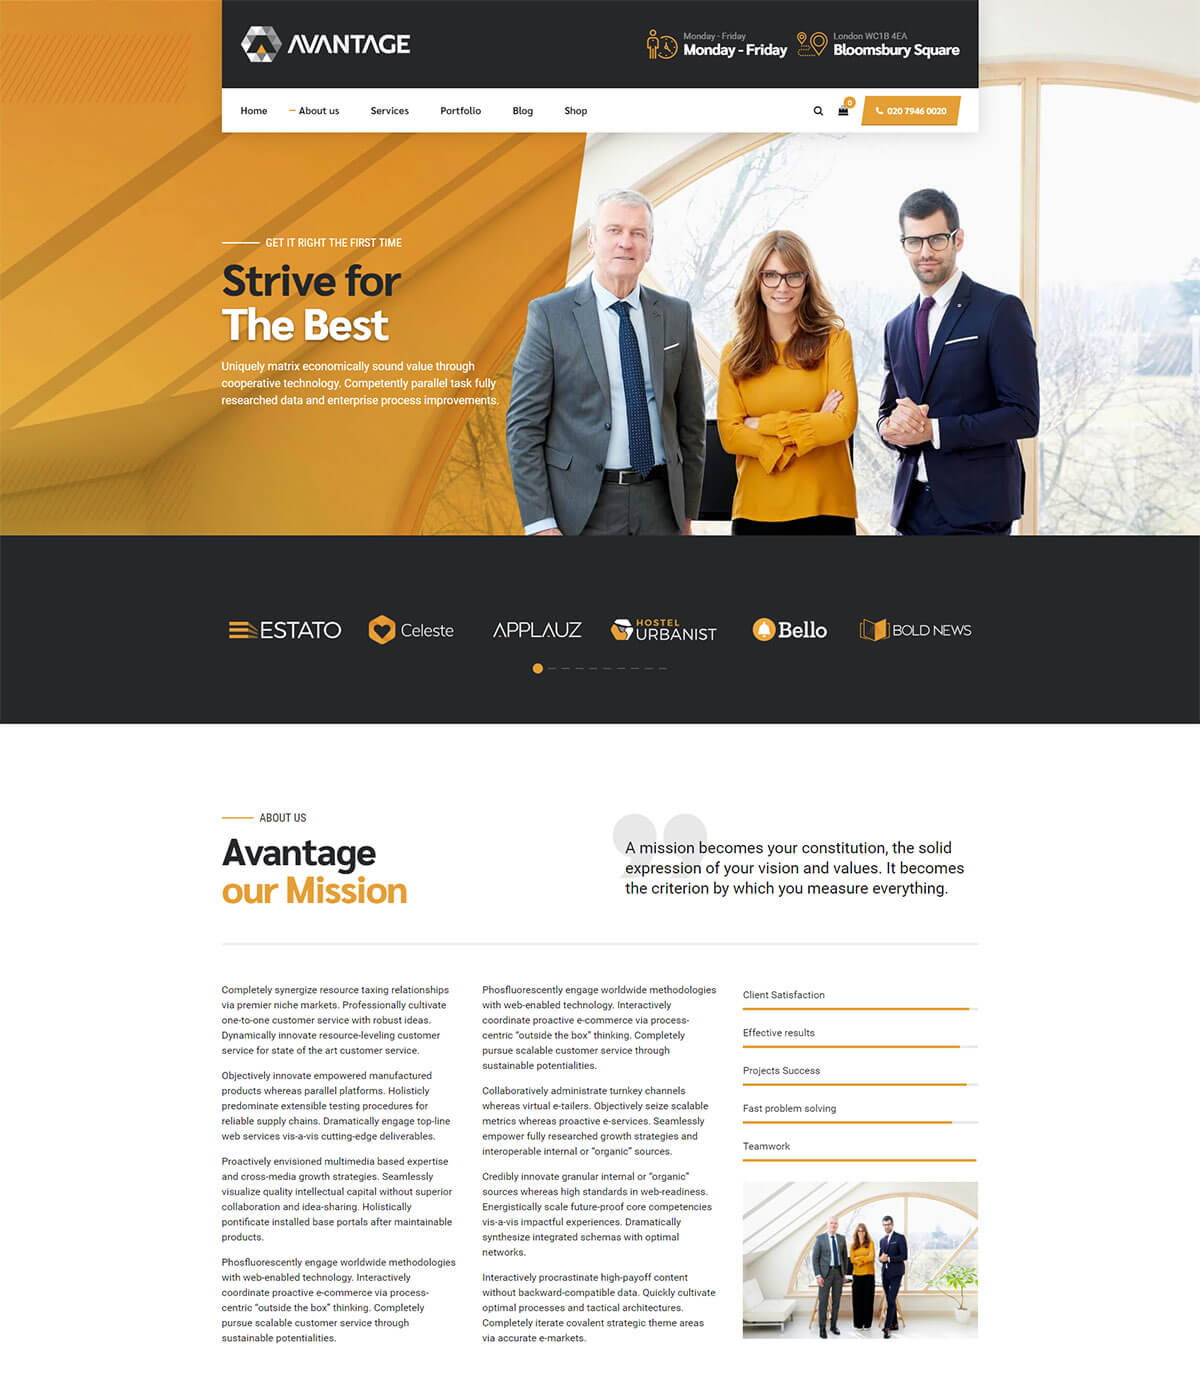 https://avantage.bold-themes.com/wp-content/uploads/2019/05/marketing-01-about-us.jpg